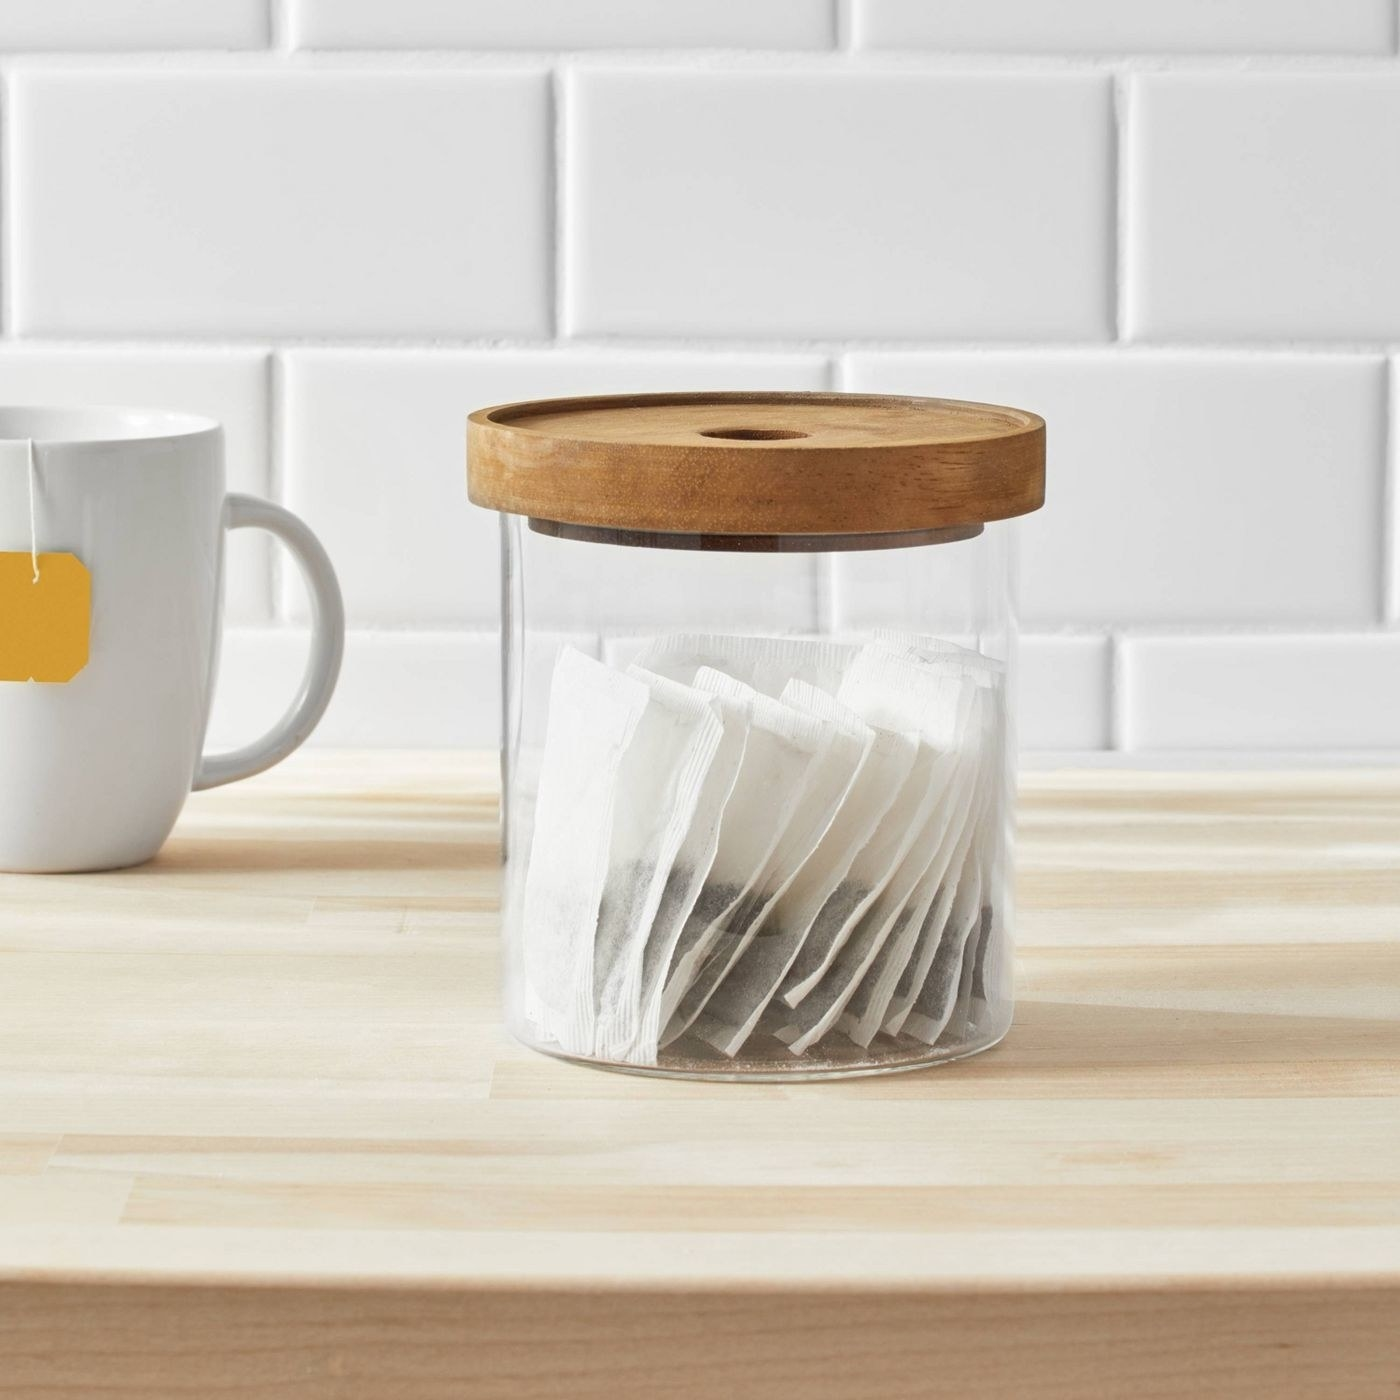 small clear glass container with a wooden lid on a kitchen counter